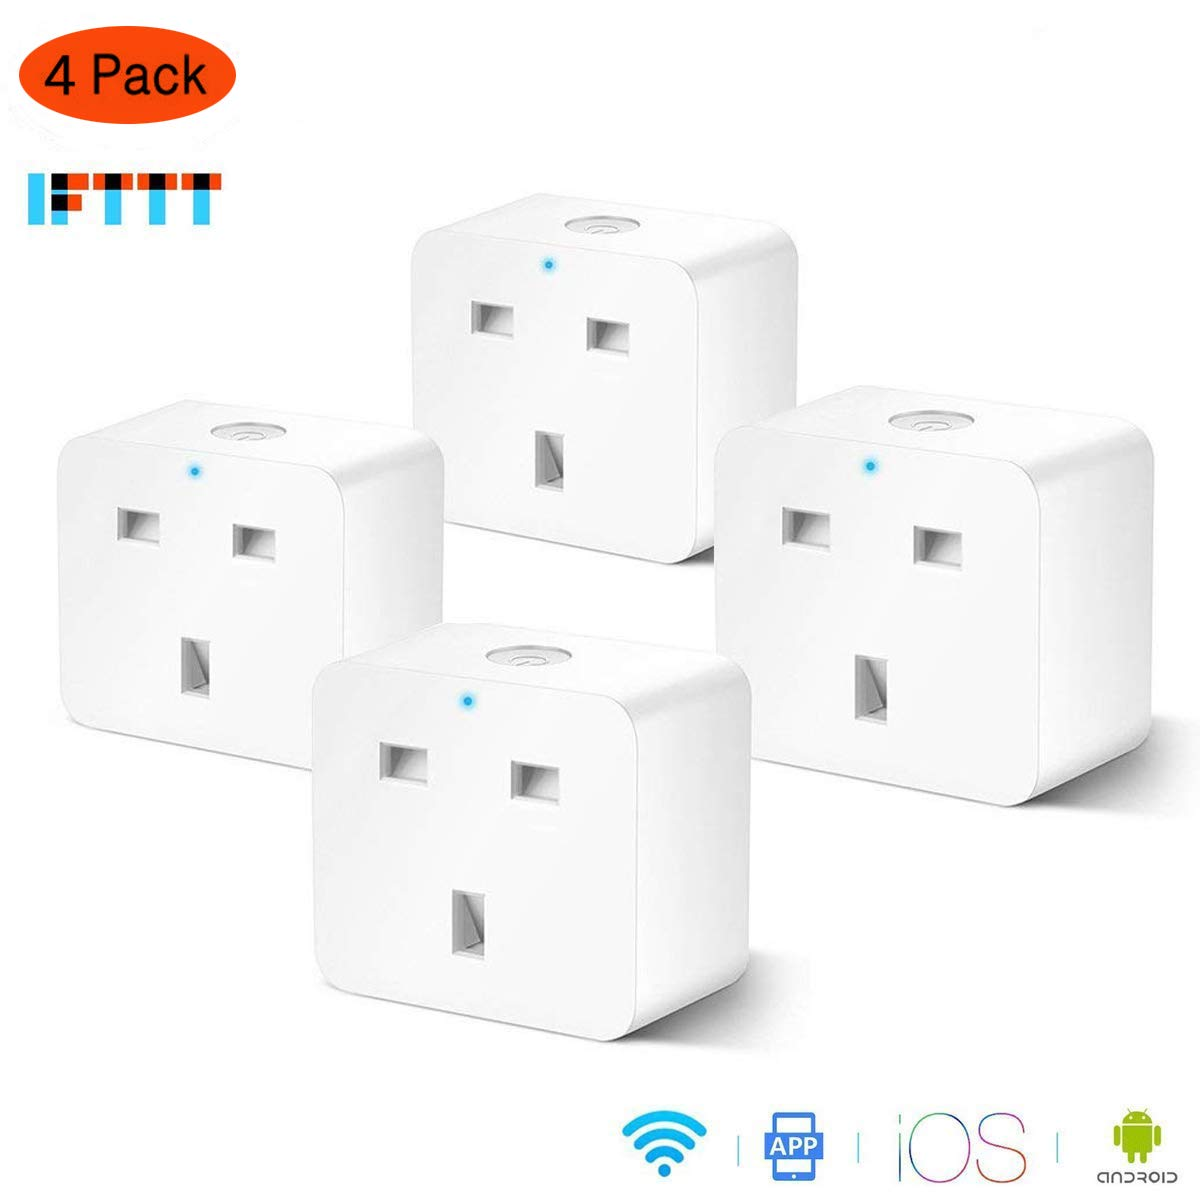 Smart Plug Socket WiFi MOKE, Switch Power Outlet with Timing Function, Compatible with  Echo Google Assistant by Voice Control, No Hub Required, Control Your Devices from Anywhere (4 Pack)